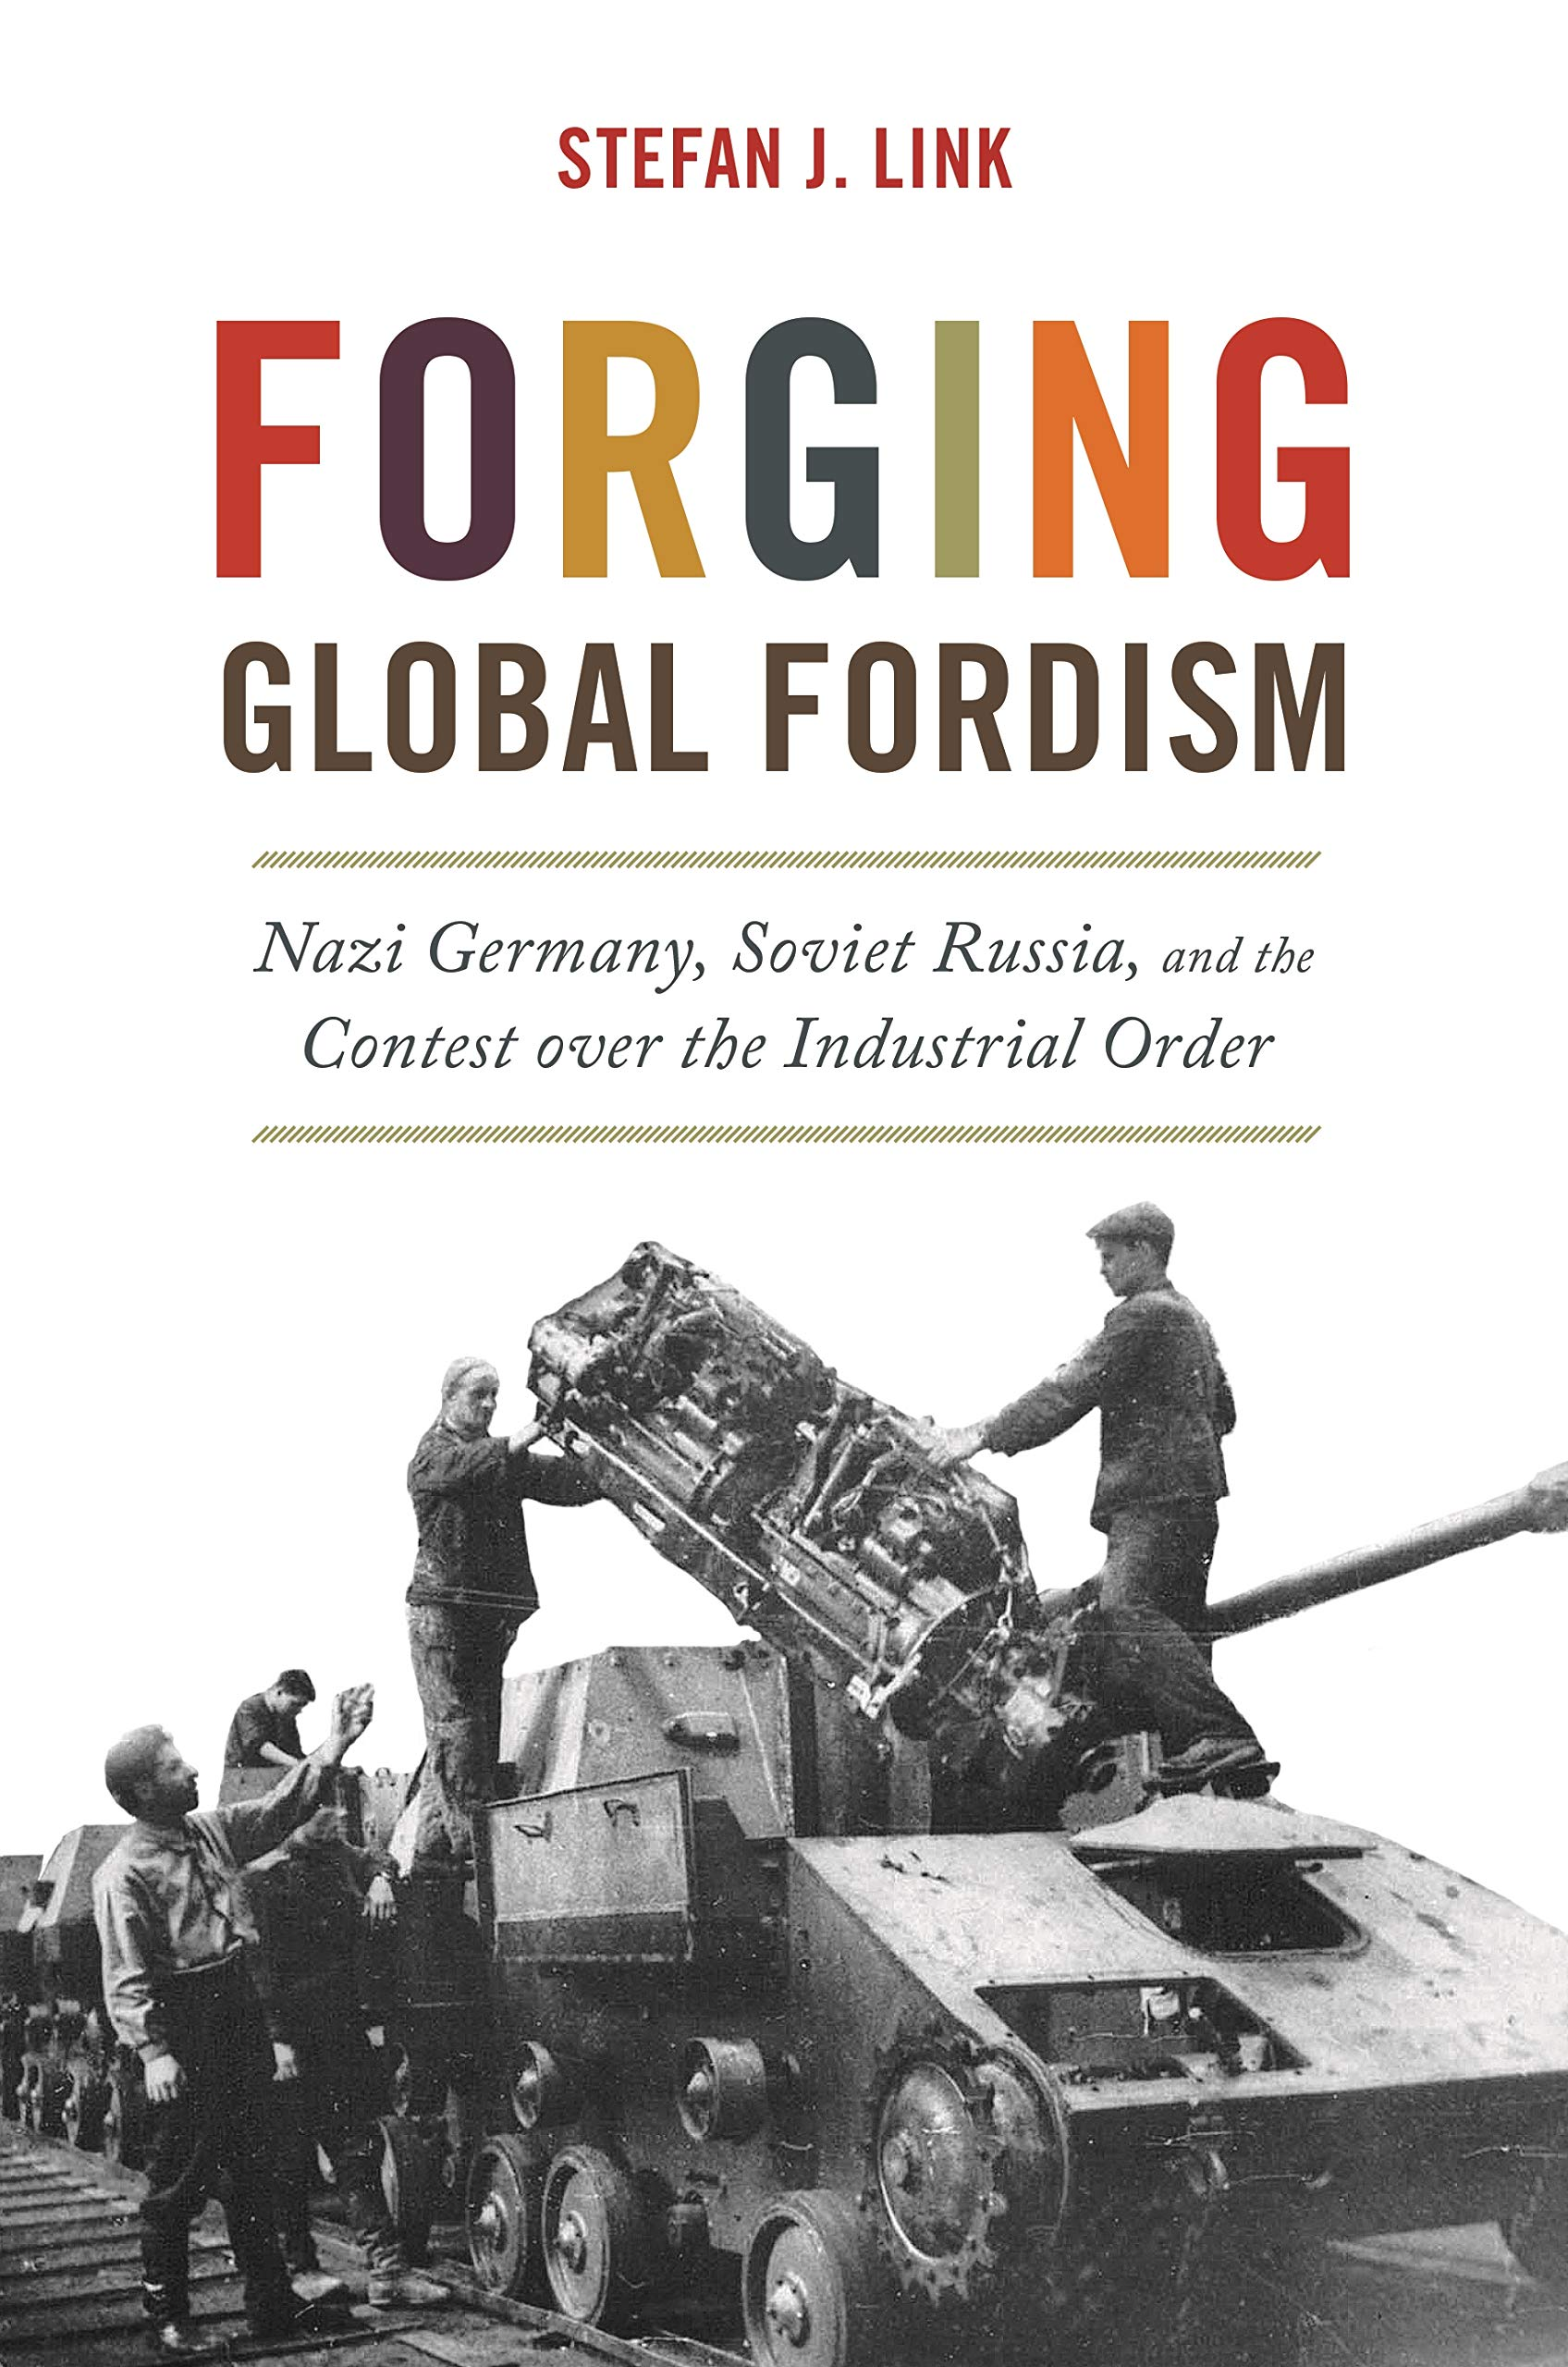 Forging Global Fordism: Nazi Germany, Soviet Russia, and the Contest over the Industrial Order (America in the World Book 40)